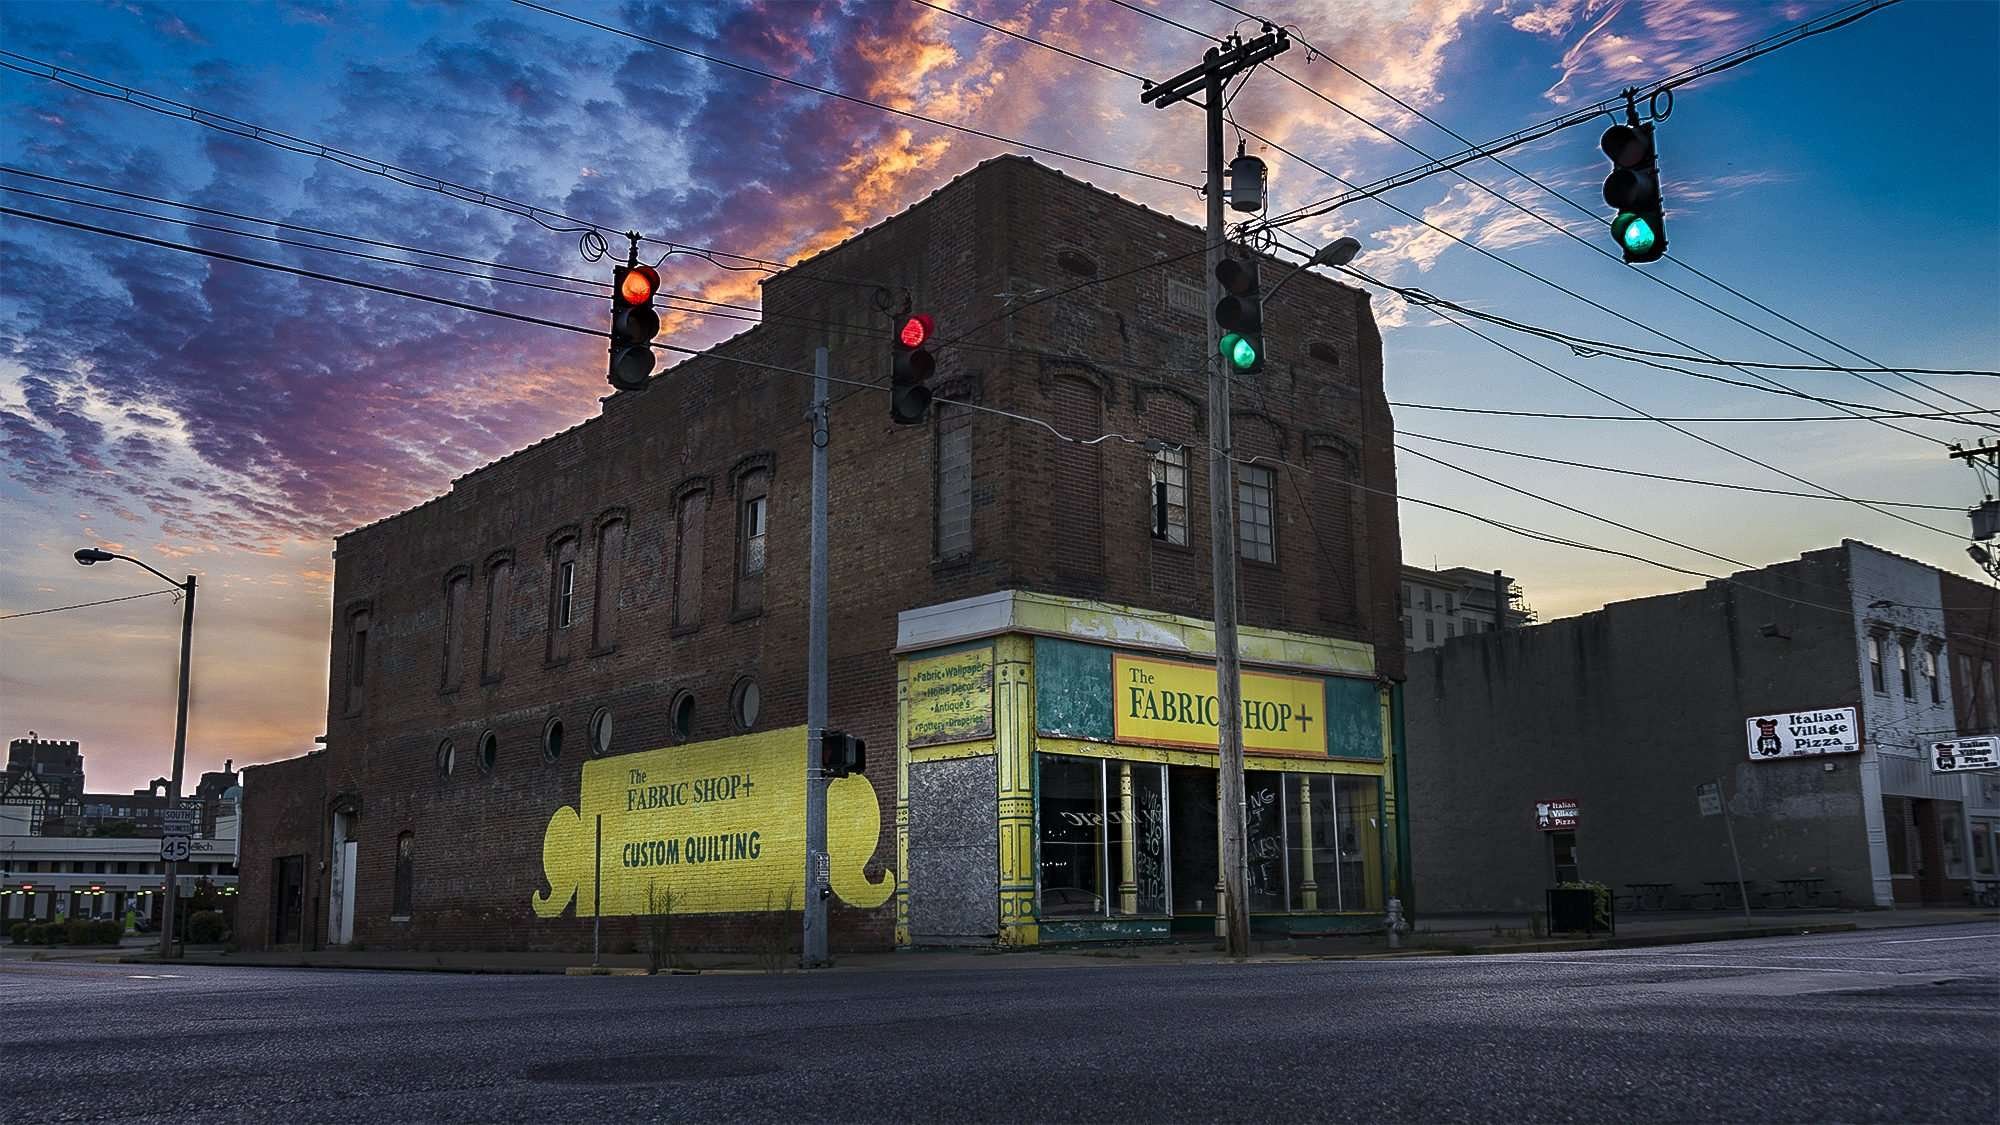 July 23, 2017 - Apartments 3rd and Kentucky in former Fabric Shop building coming to Paducah KY/photonews247.com